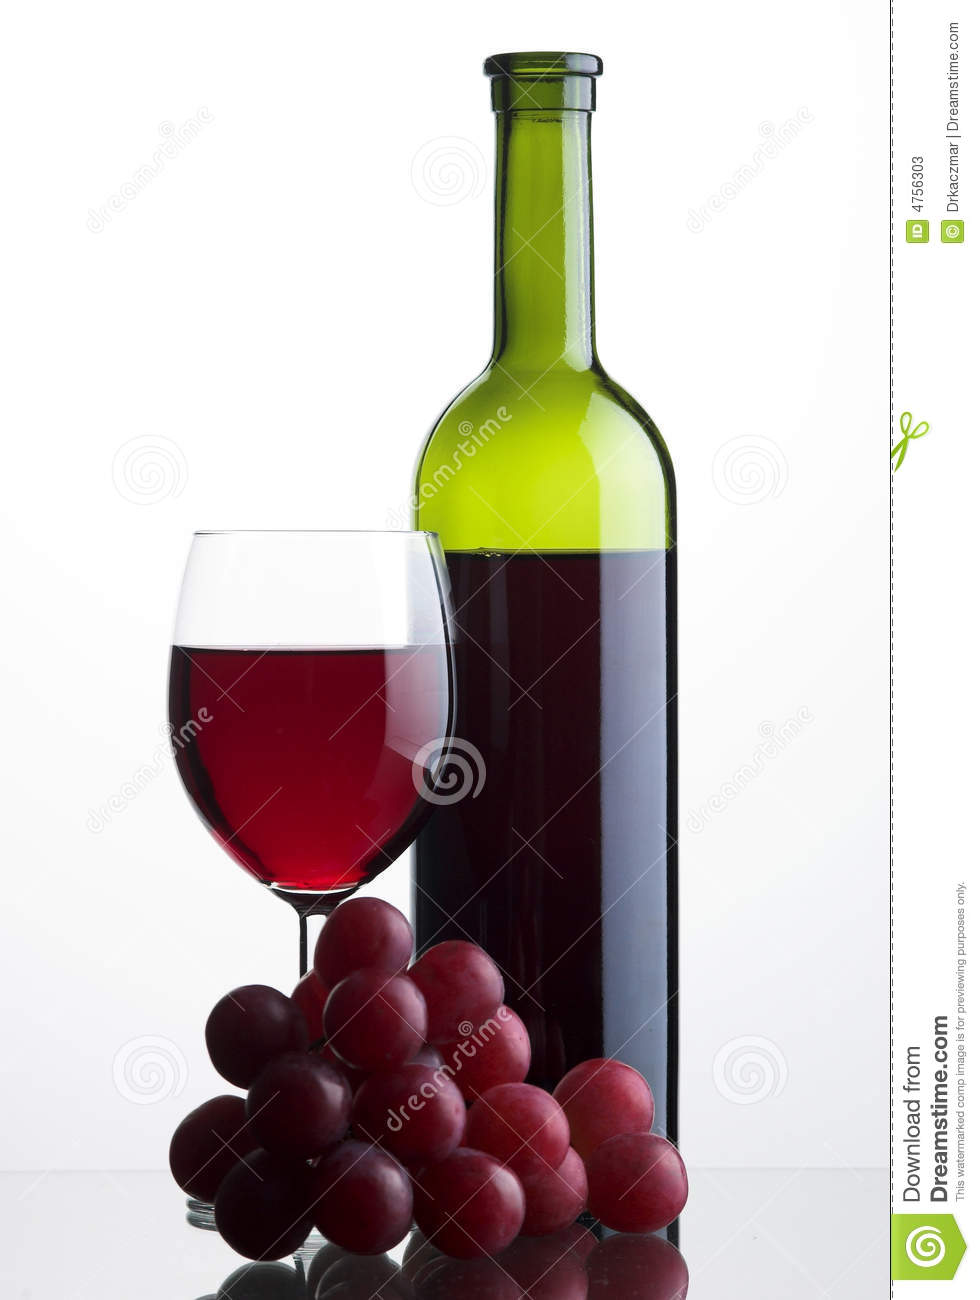 Bottle And Glass Of Red Wine With Grapes Stock Image ...